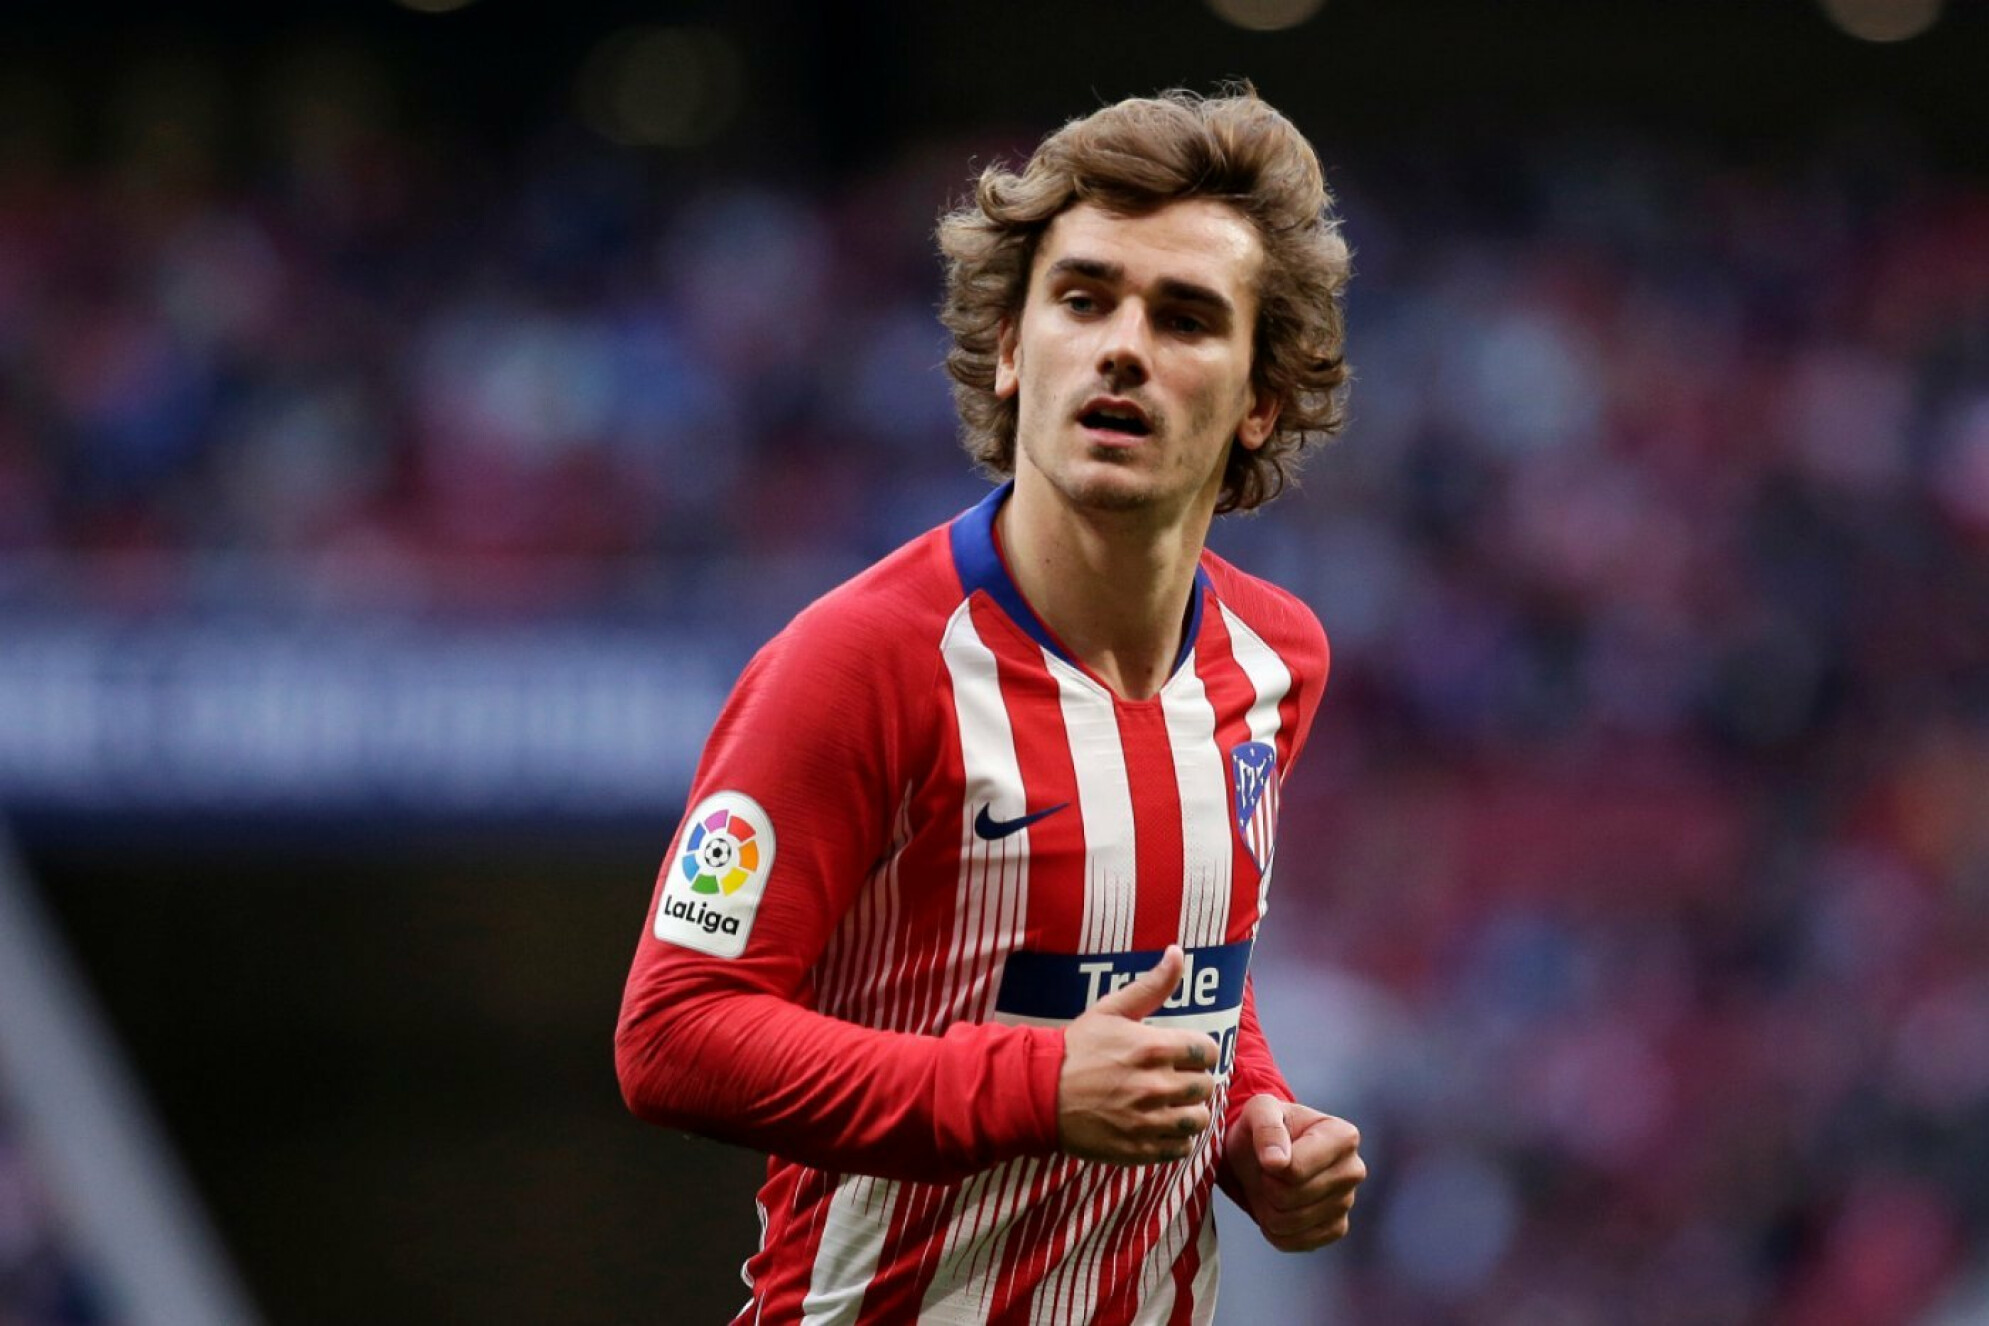 BREAKING NEWS: Antoine Griezmann officially decides to leave Atletico Madrid